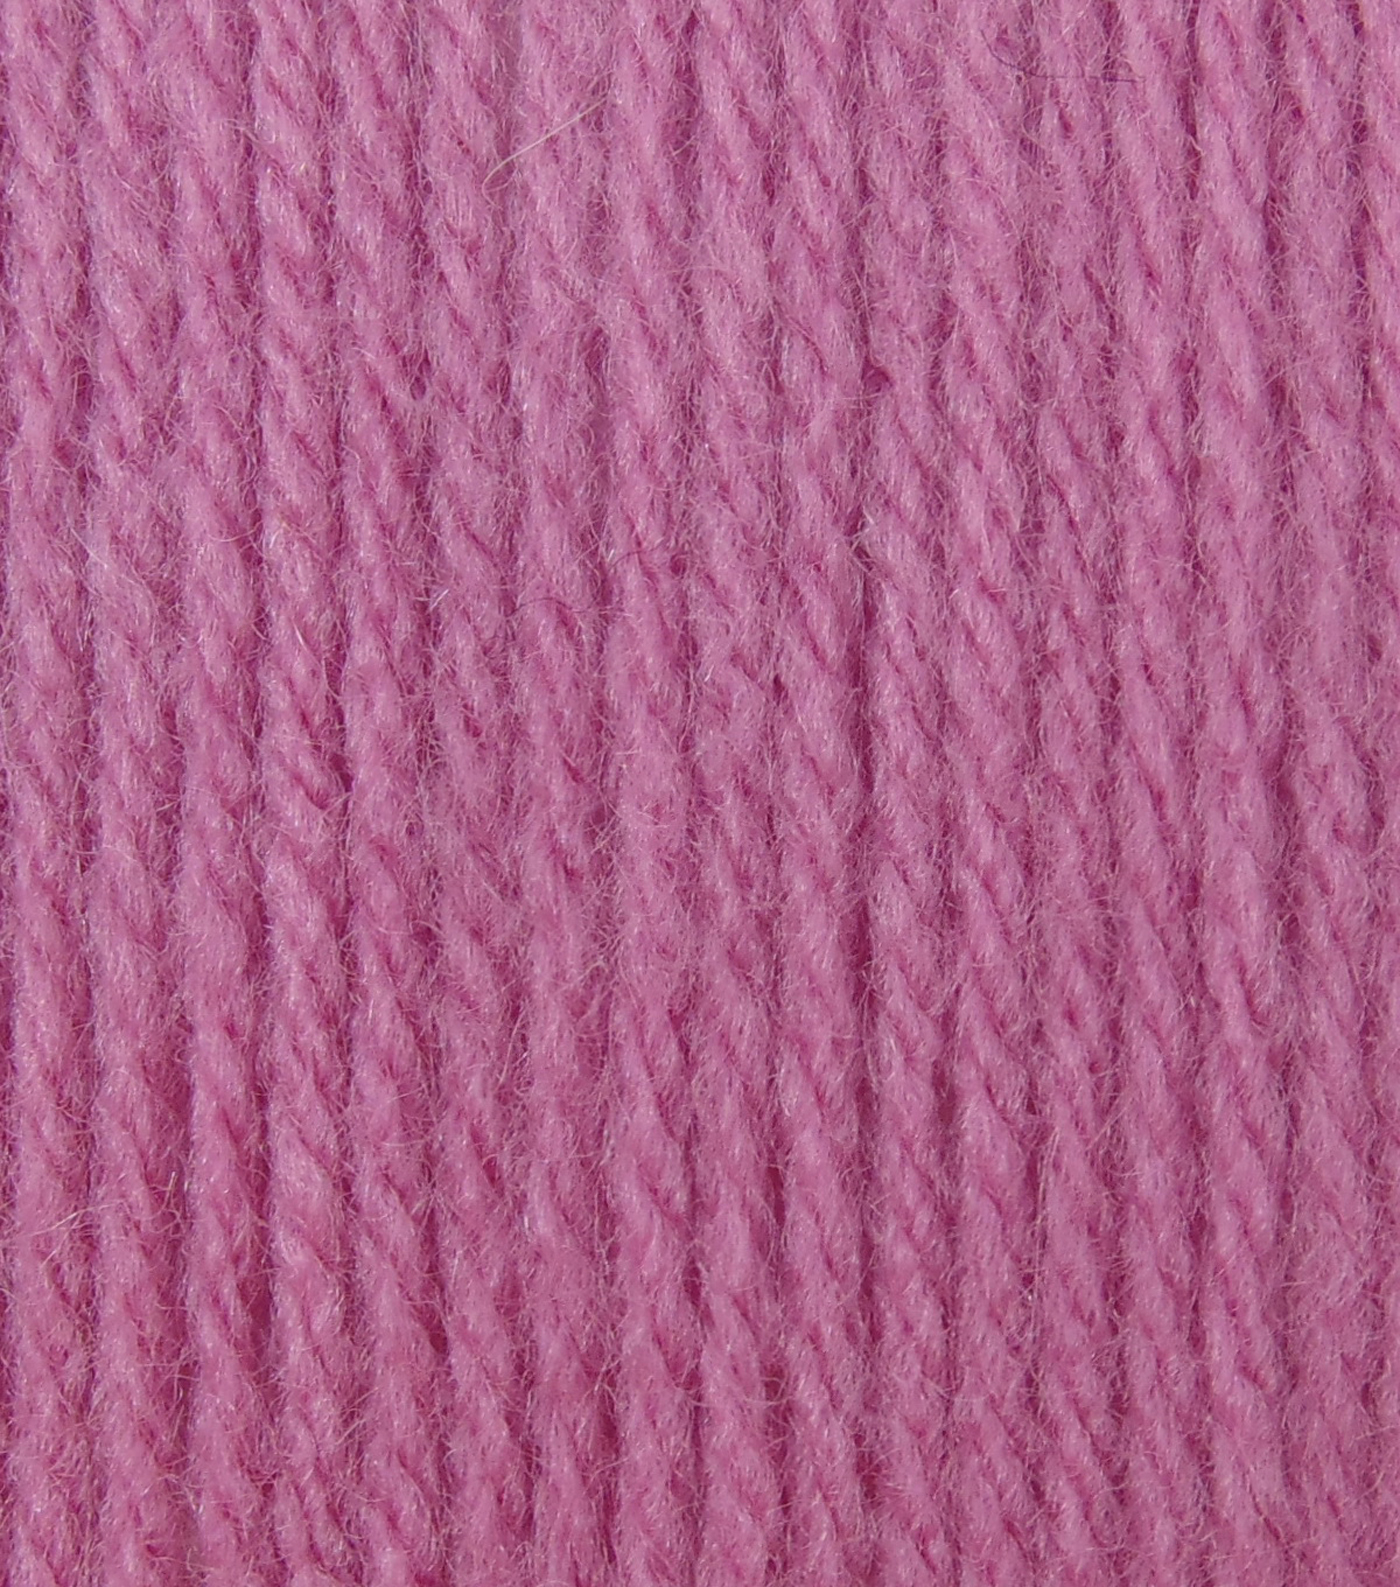 Big Twist Collection Value Worsted Yarn, Medium Rose